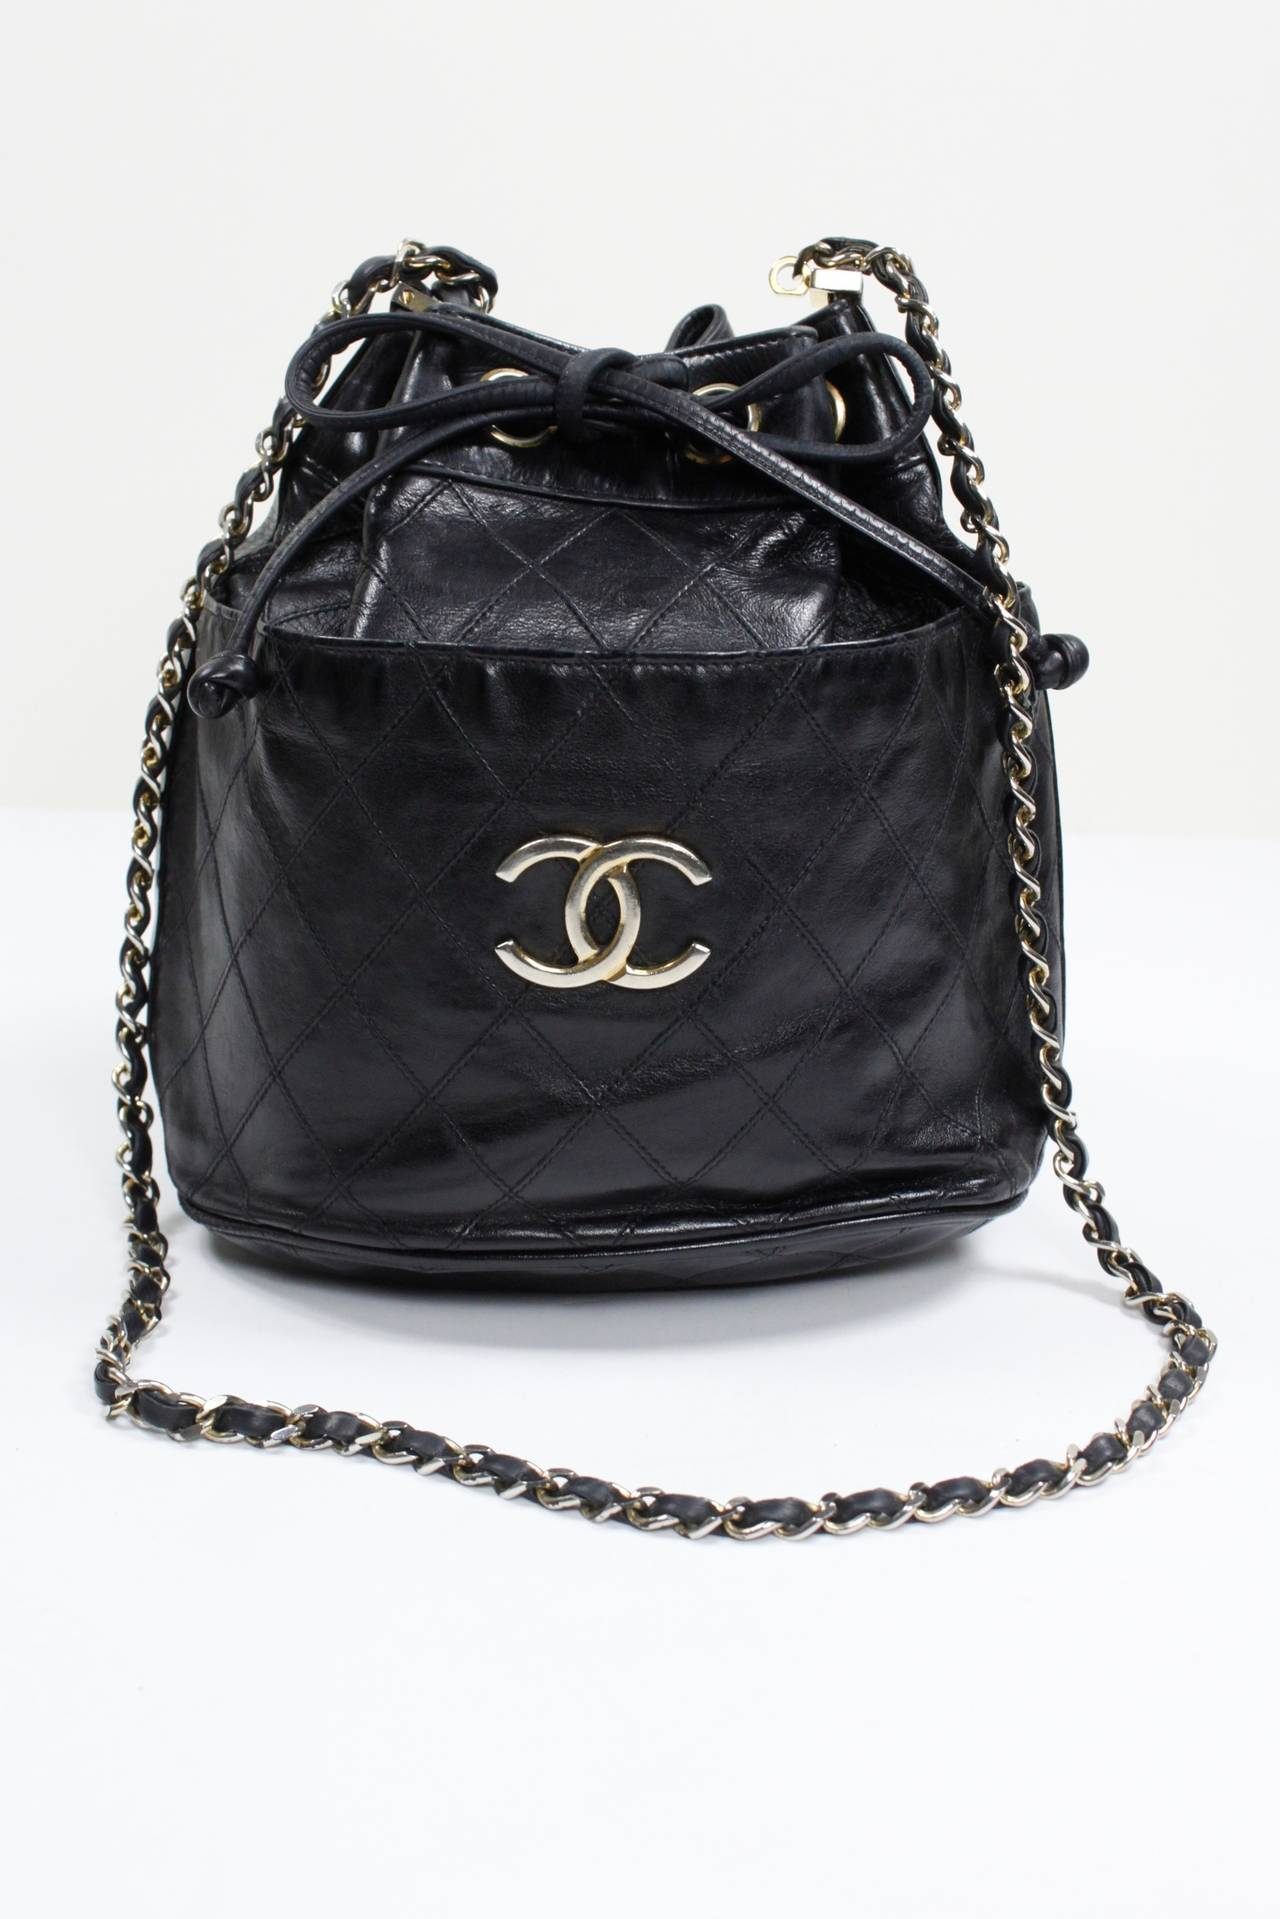 Chanel Black Quilted Bucket Bag With Logo And Chain Strap